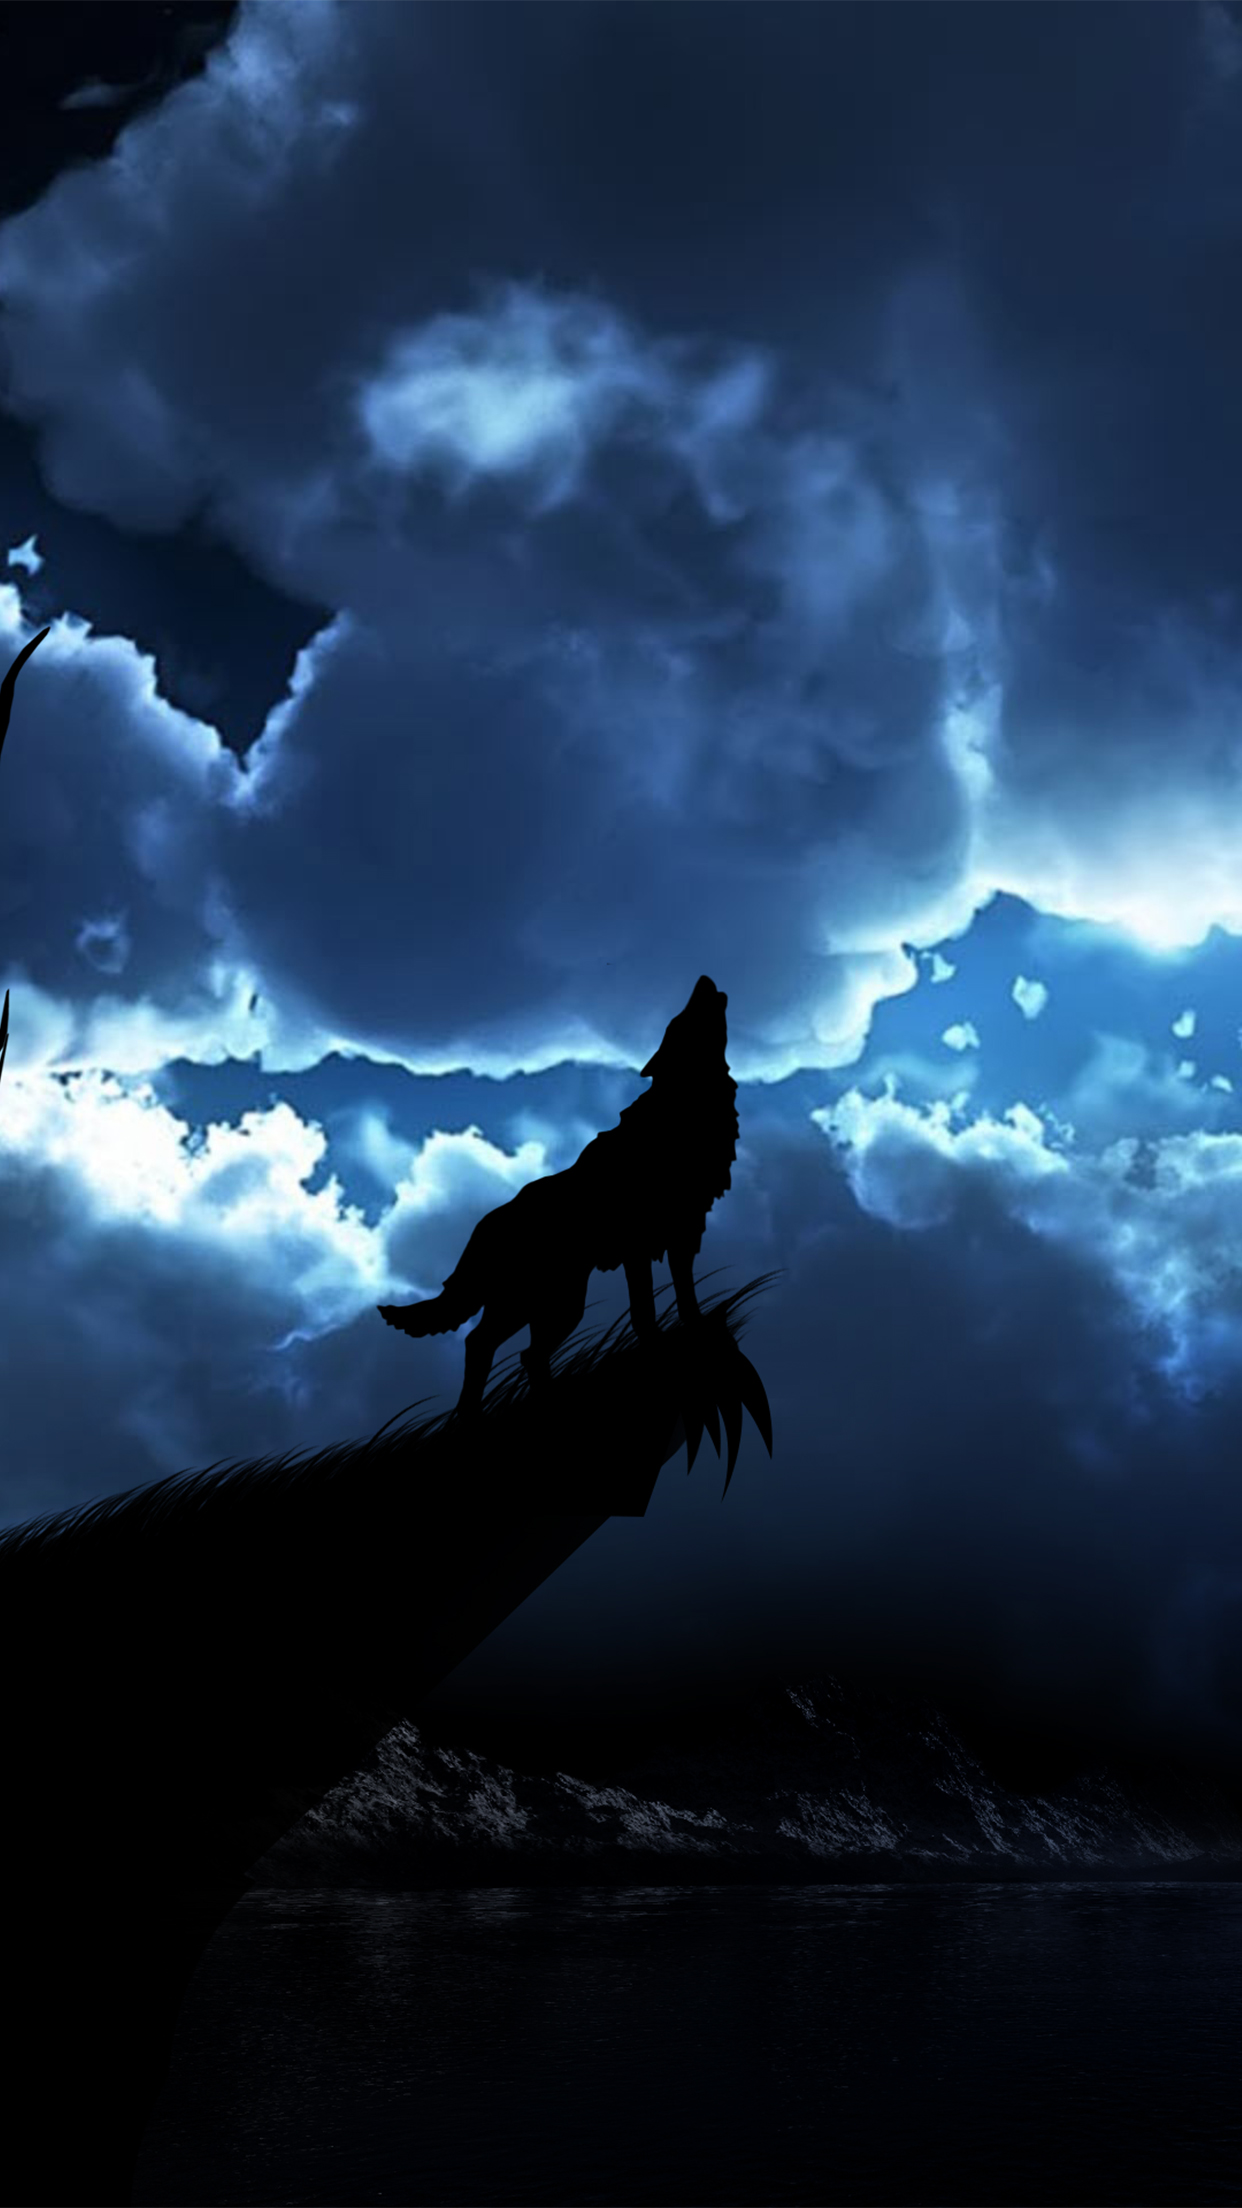 Silhouette Iphone Wallpaper Wolf Night Wallpaper For Iphone X 8 7 6 Free Download